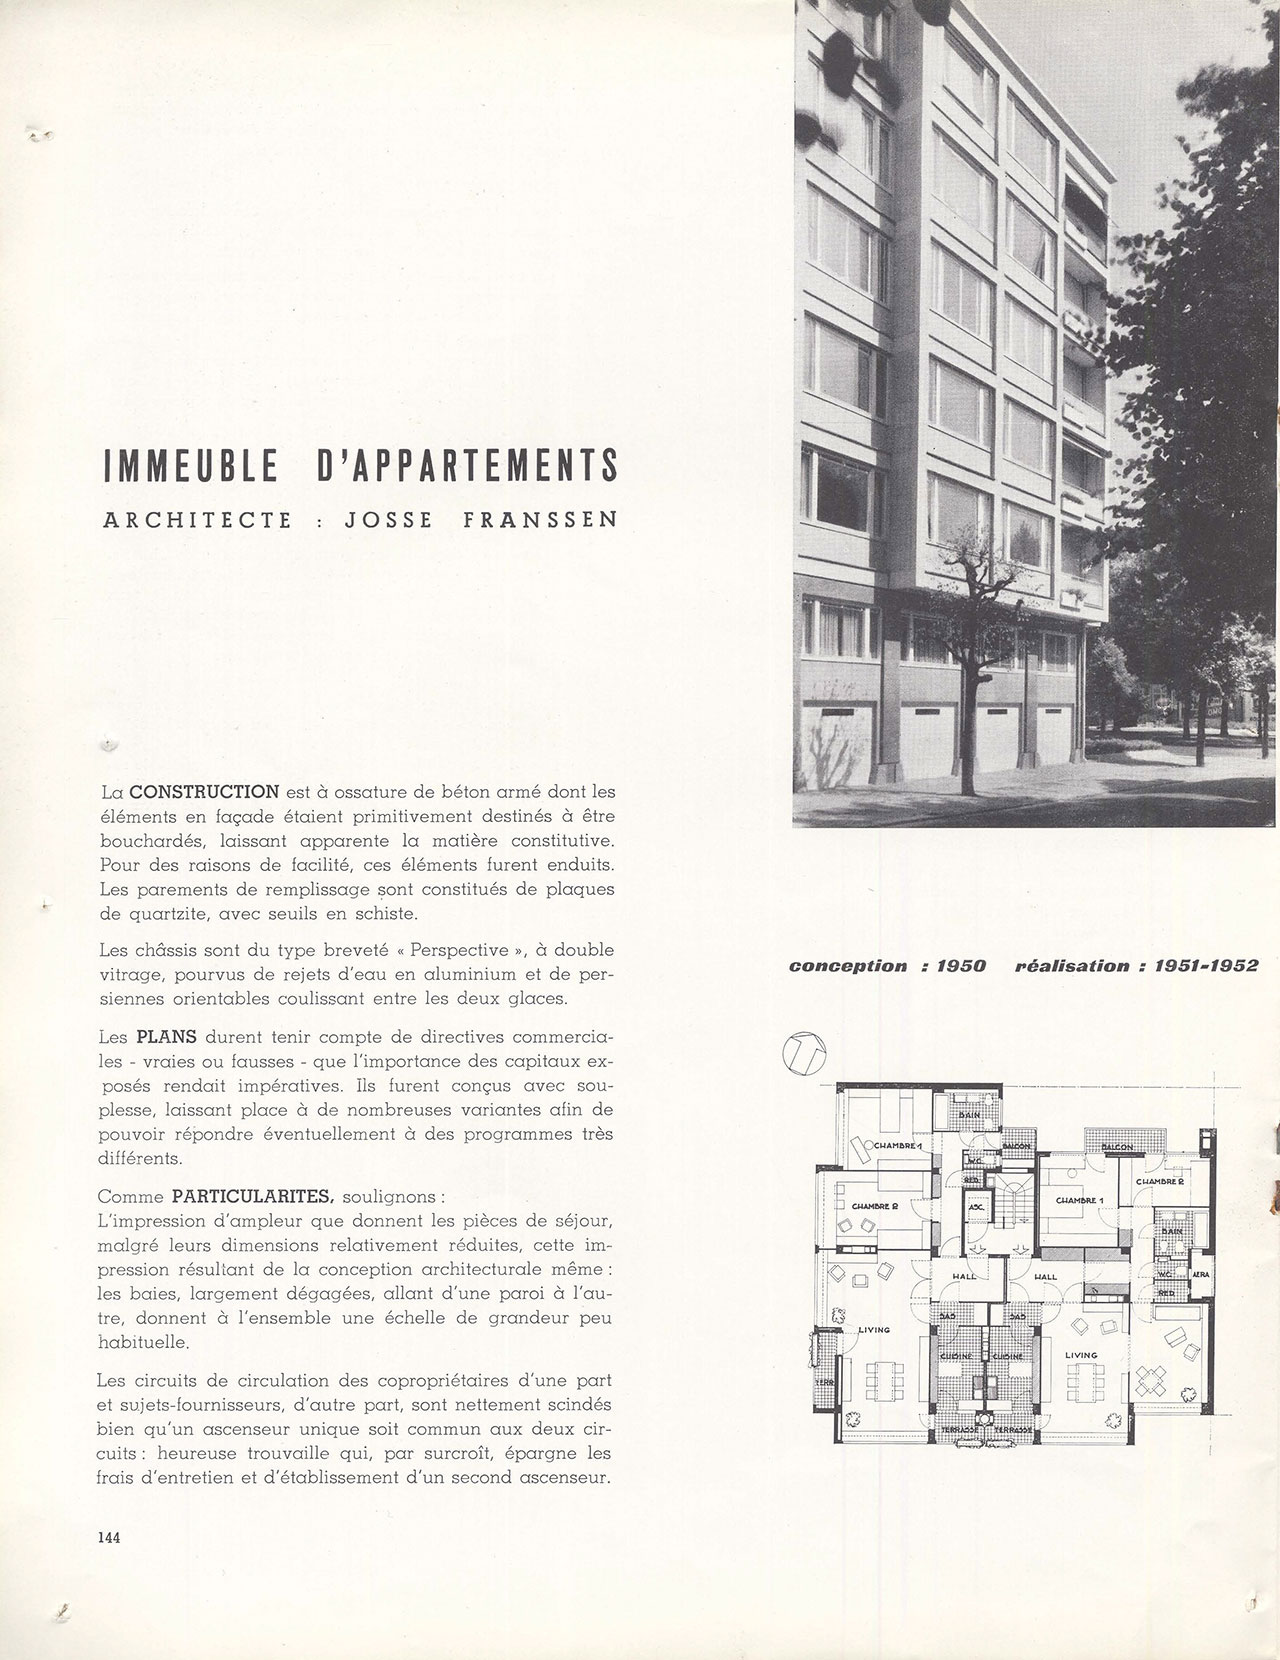 Immeuble d'appartements